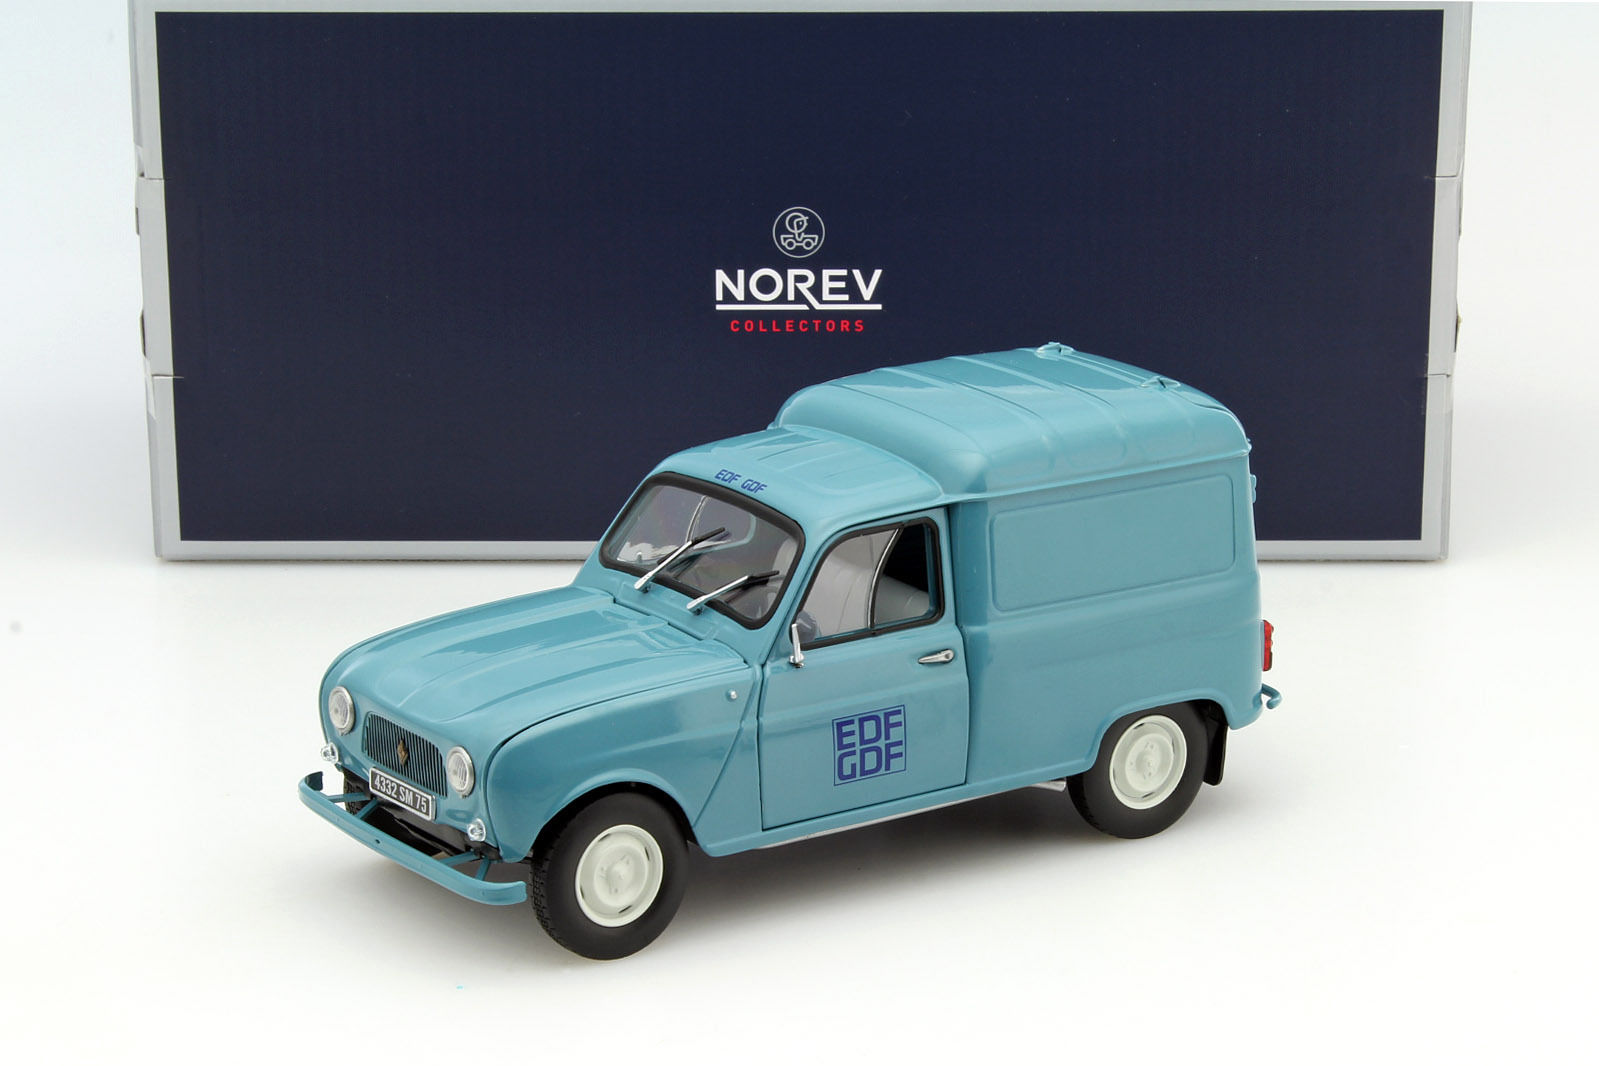 Norev 1:18 1965年モデル ルノー 4 Renault 4 Fourgonnette Year 1965 1/18 by Norev